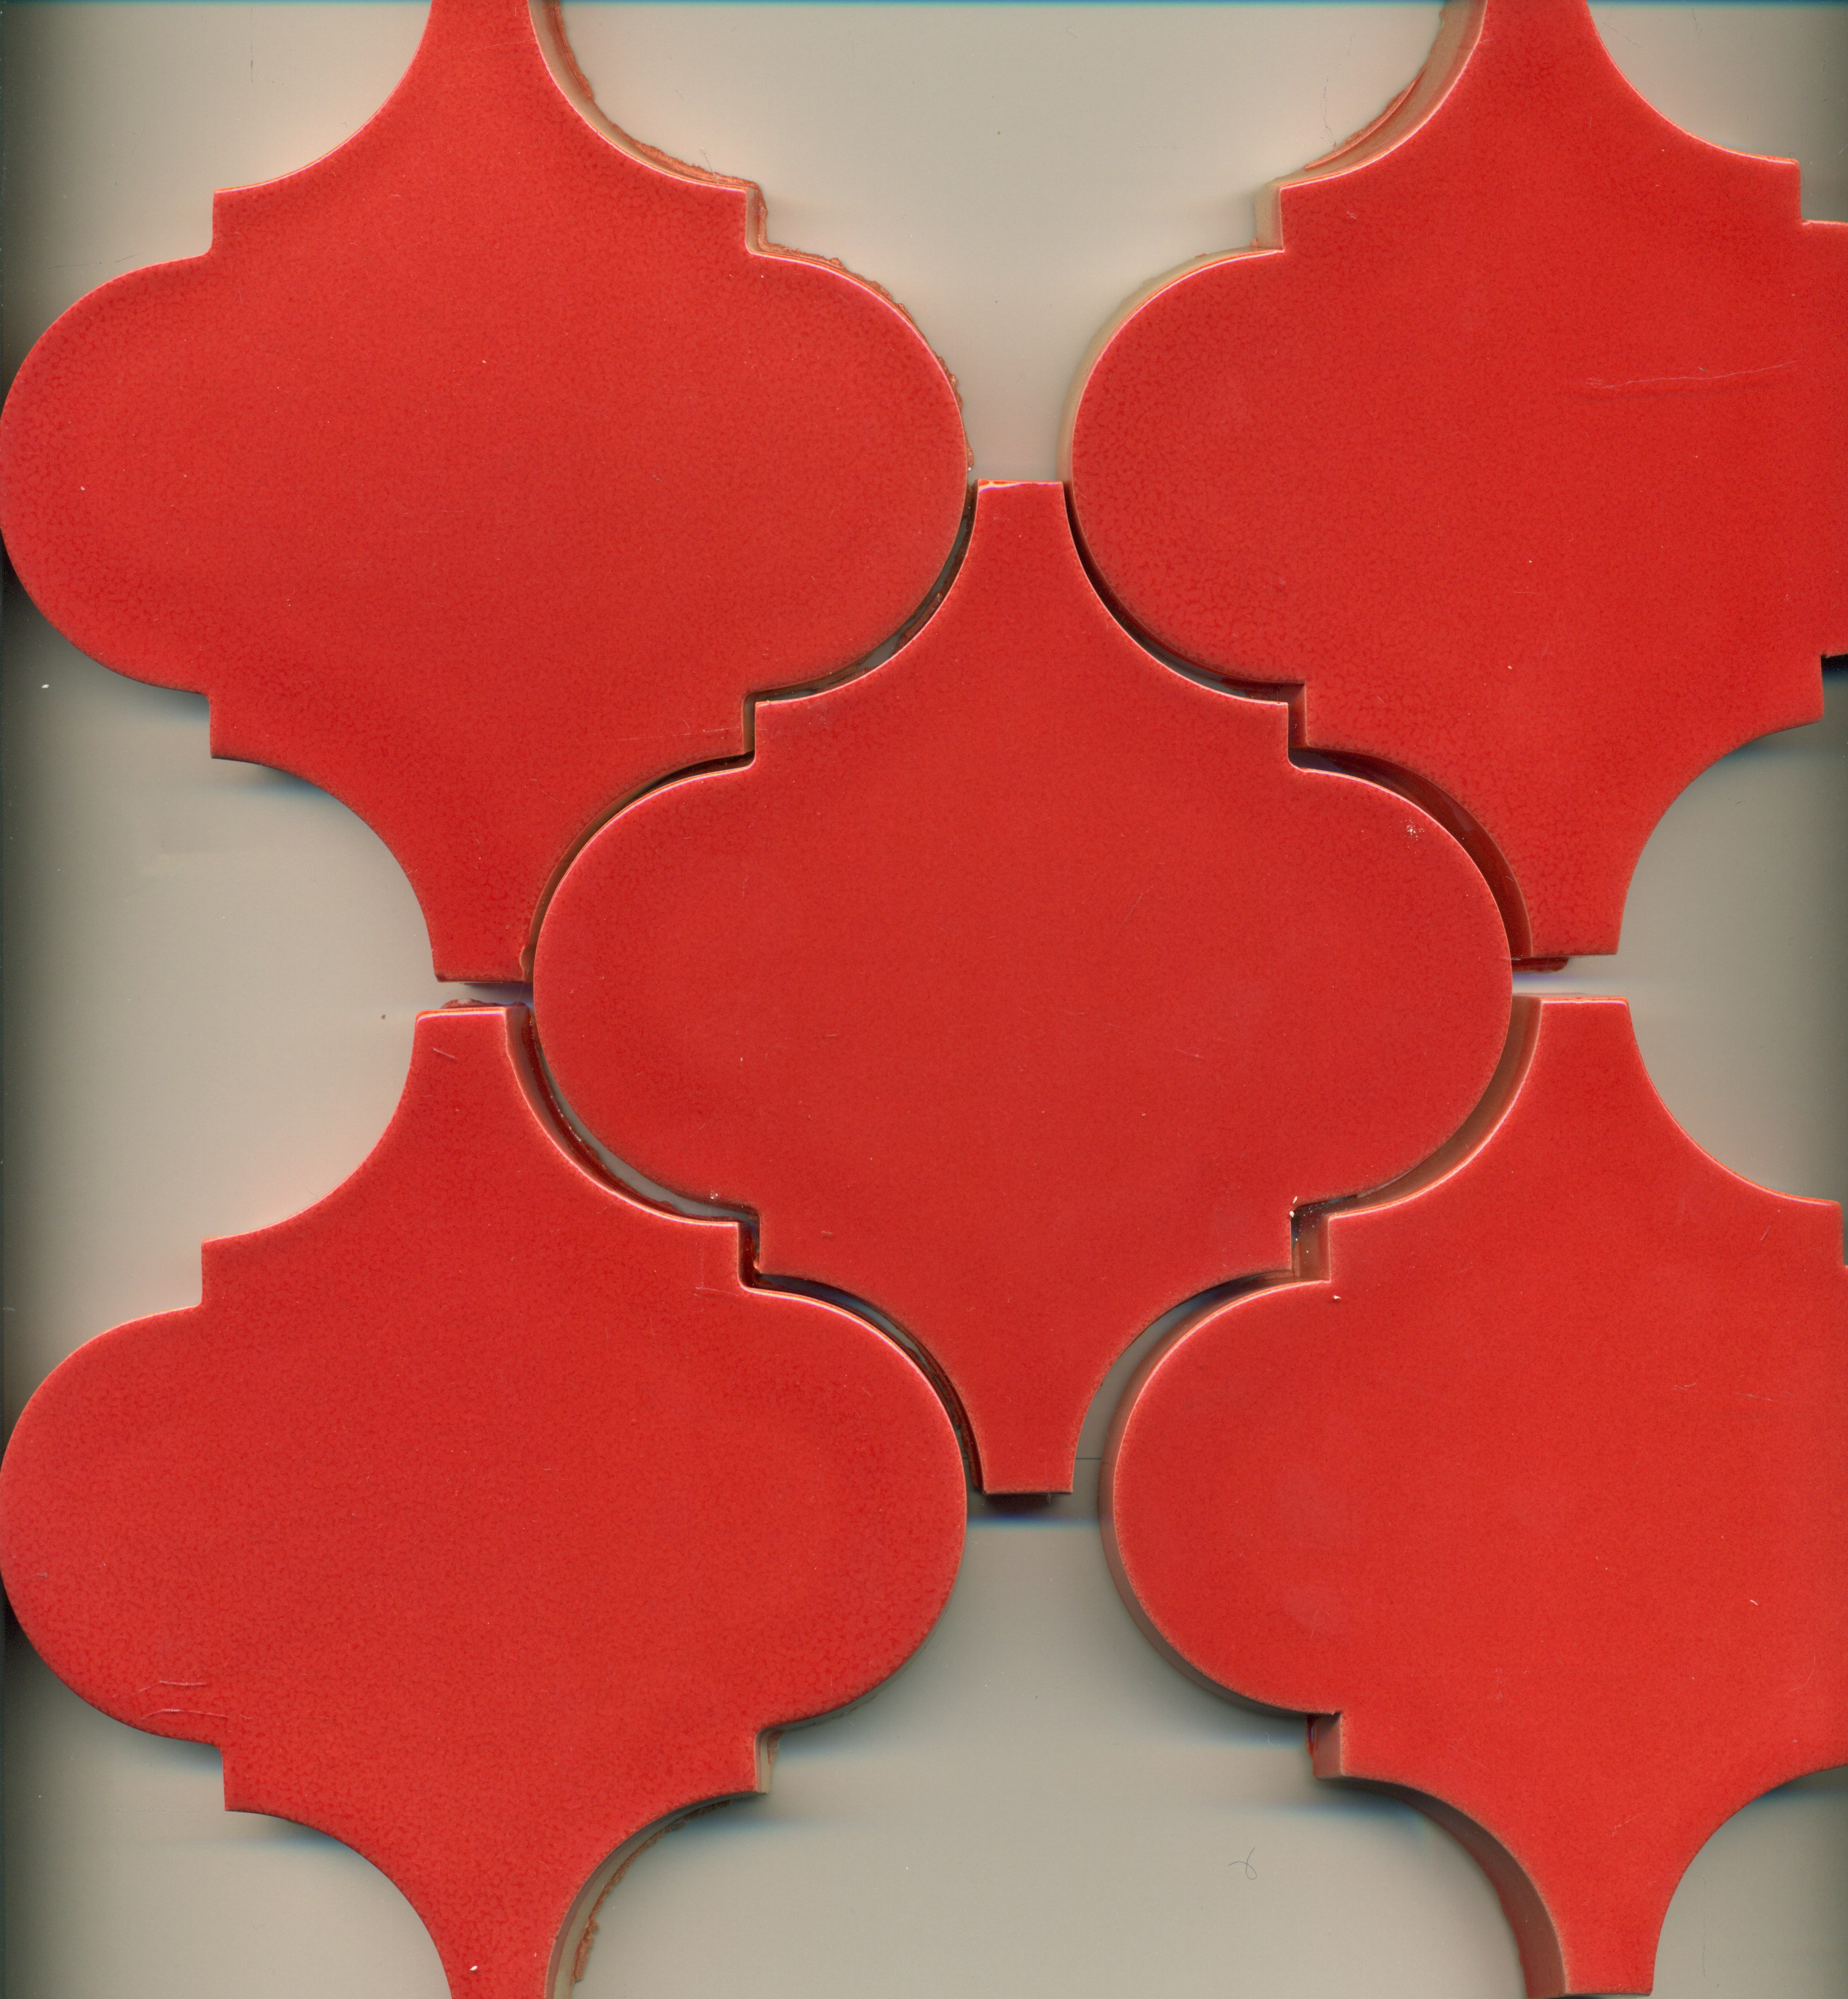 Shaped Tiles Star And Cross Tiles Arabesque Hexagonal Til